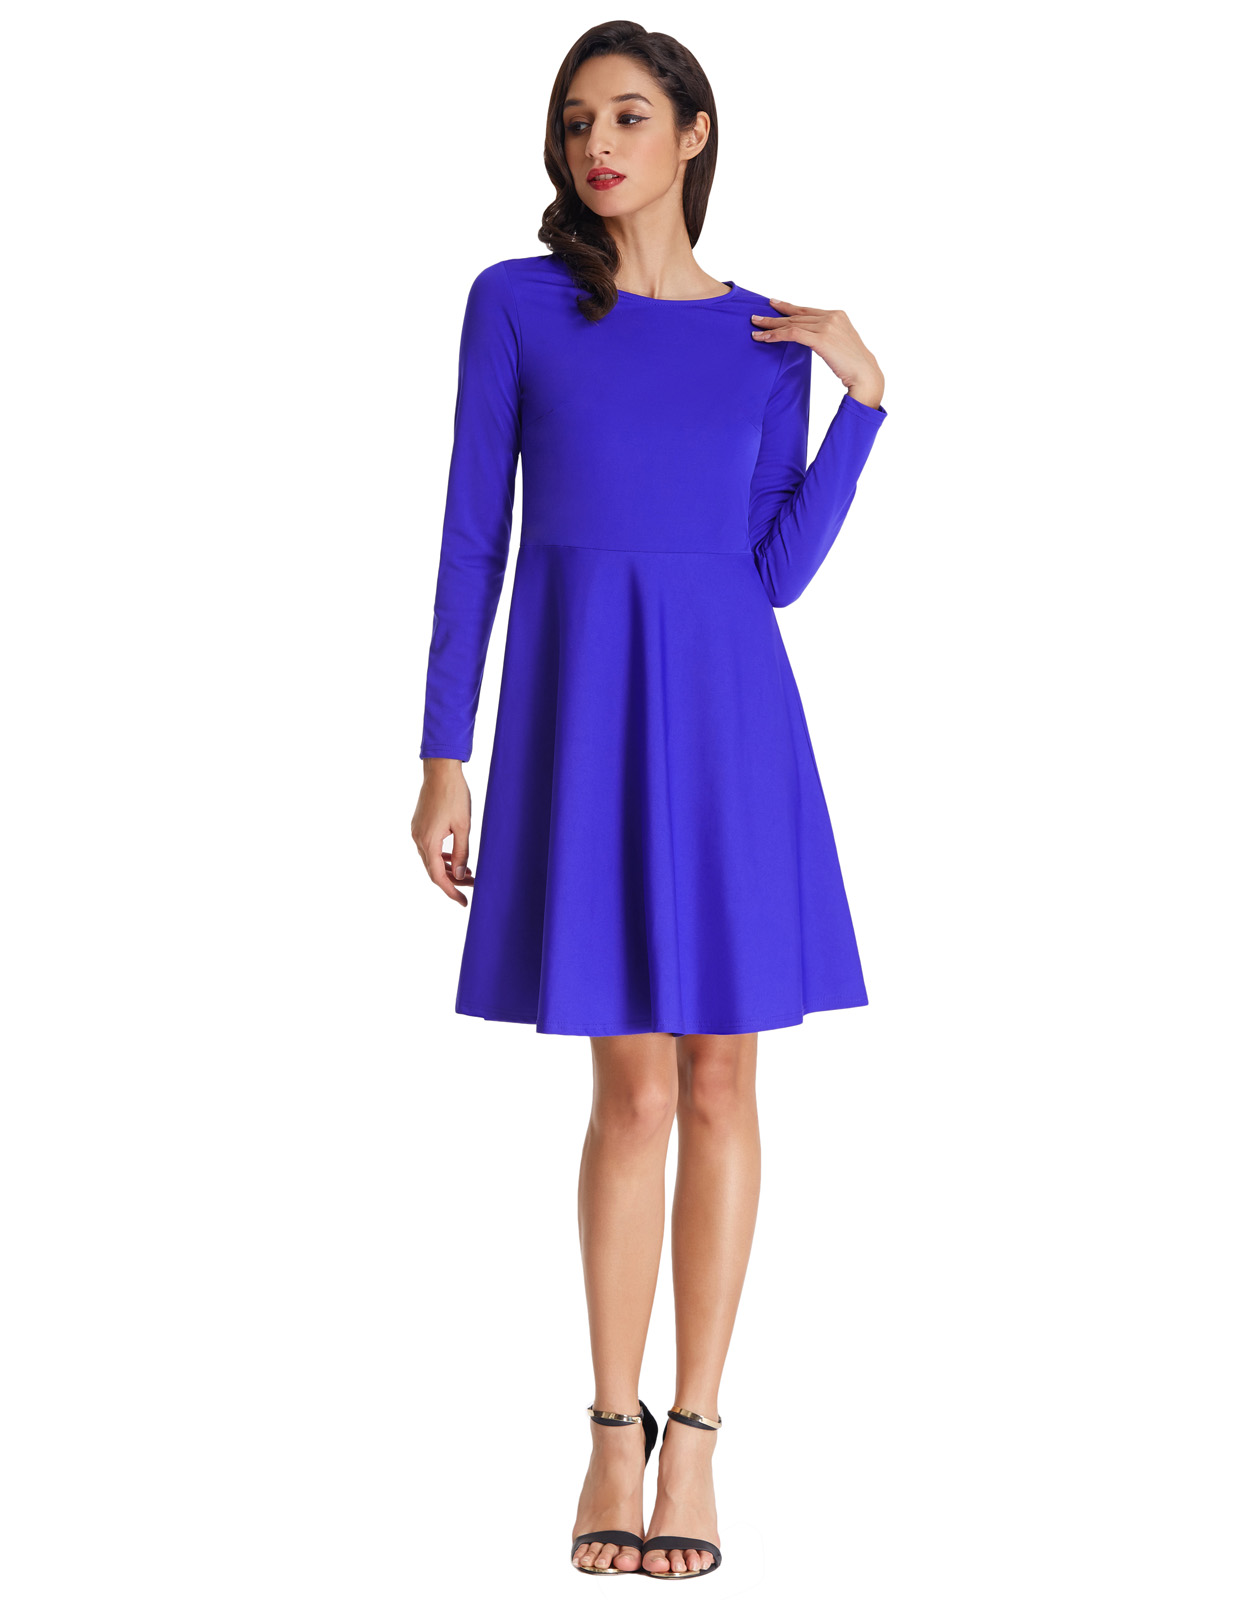 retro vintage Woman dress causal Long Sleeve Party Gowns Swing Dress Casual Flared A Line Skater Dress Gift vestidos verano 2018